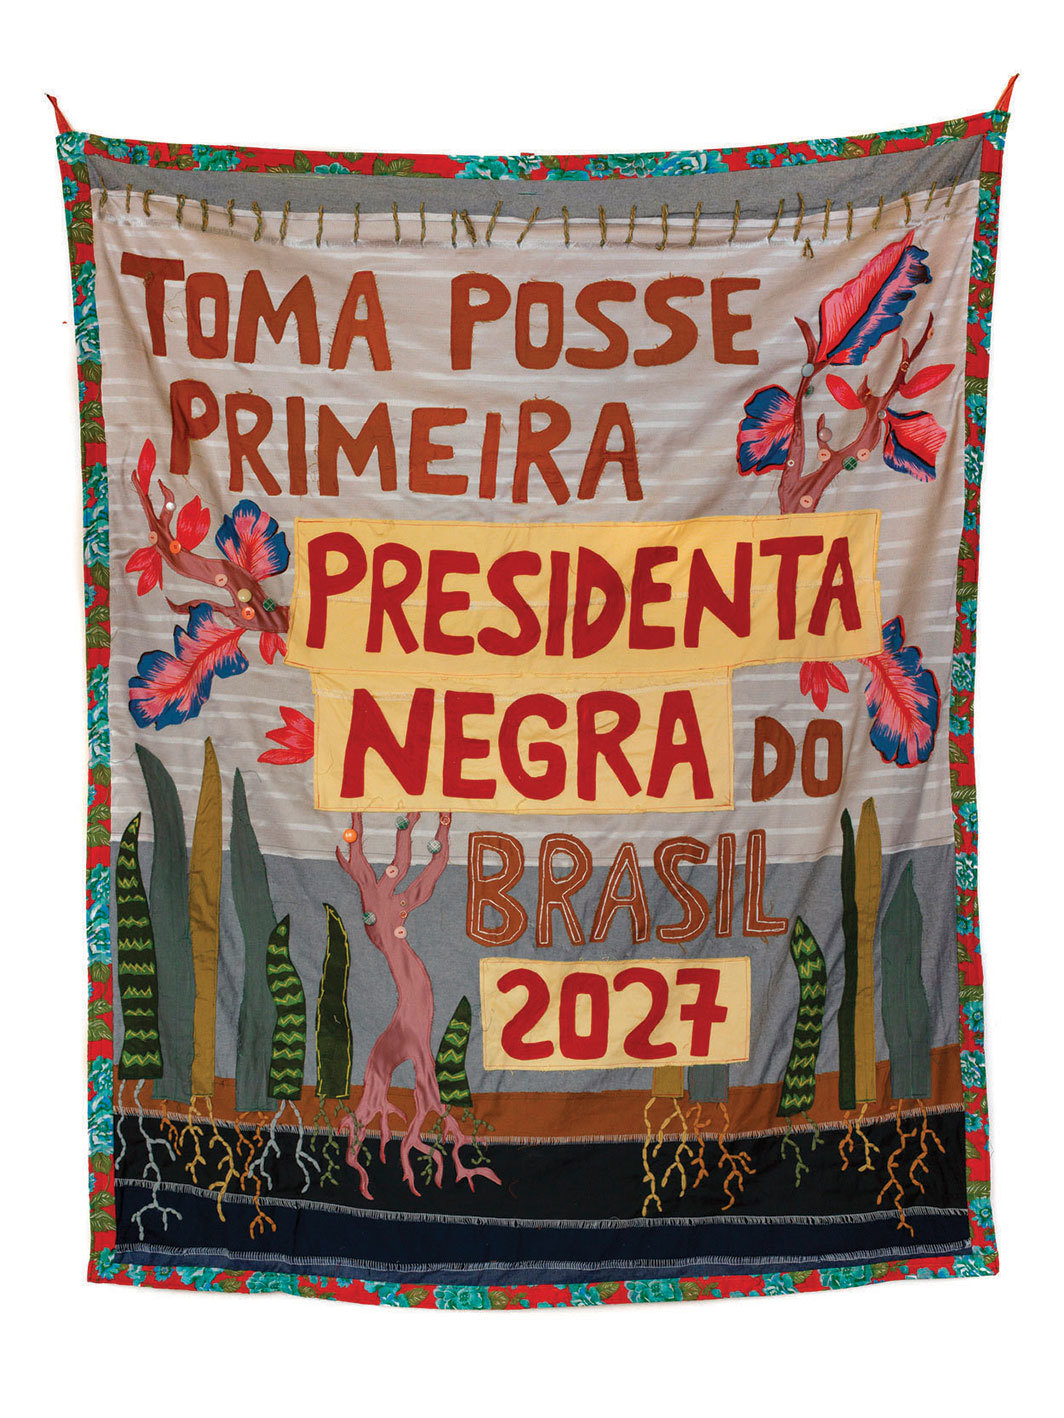 "Randolpho Lamonier, Toma posse primeira presidenta negra do Brasil 2027 (For the First Time a Black Woman Is Sworn in as President of Brazil 2027), 2018, sewing and embroidery on fabric, 72 7⁄8 × 61"". From the series ""Profecias"" (Prophesies), 2018."